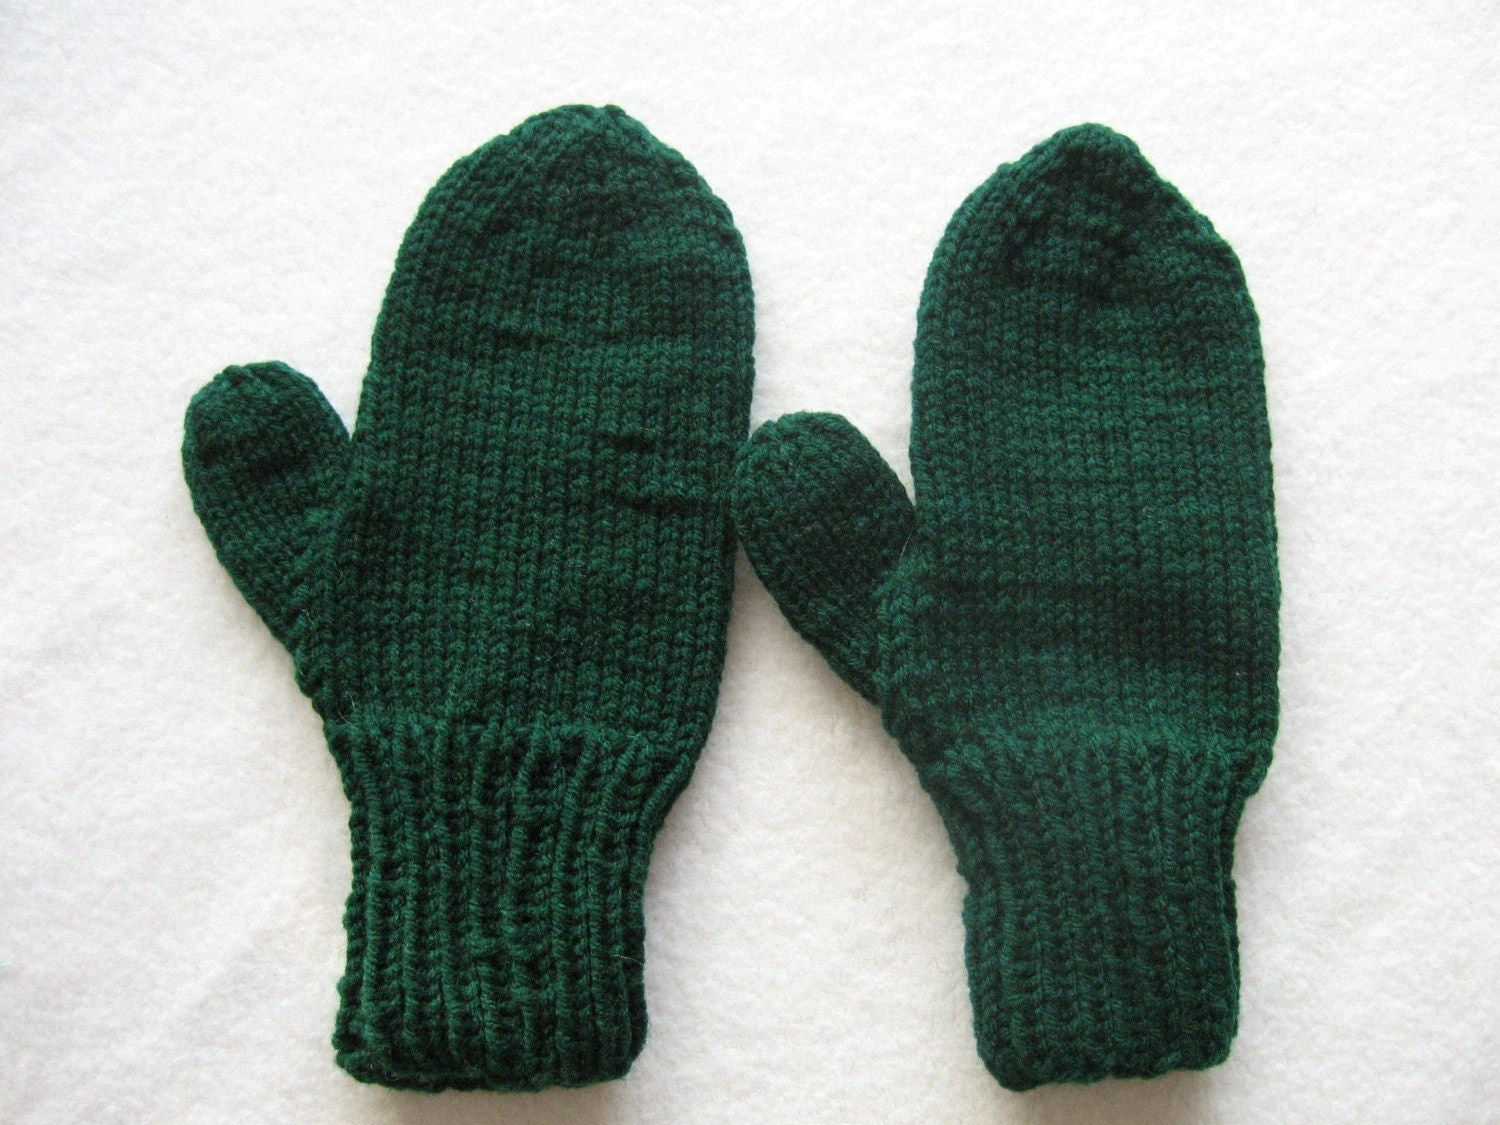 Crocheted Mittens Patterns Free Patterns